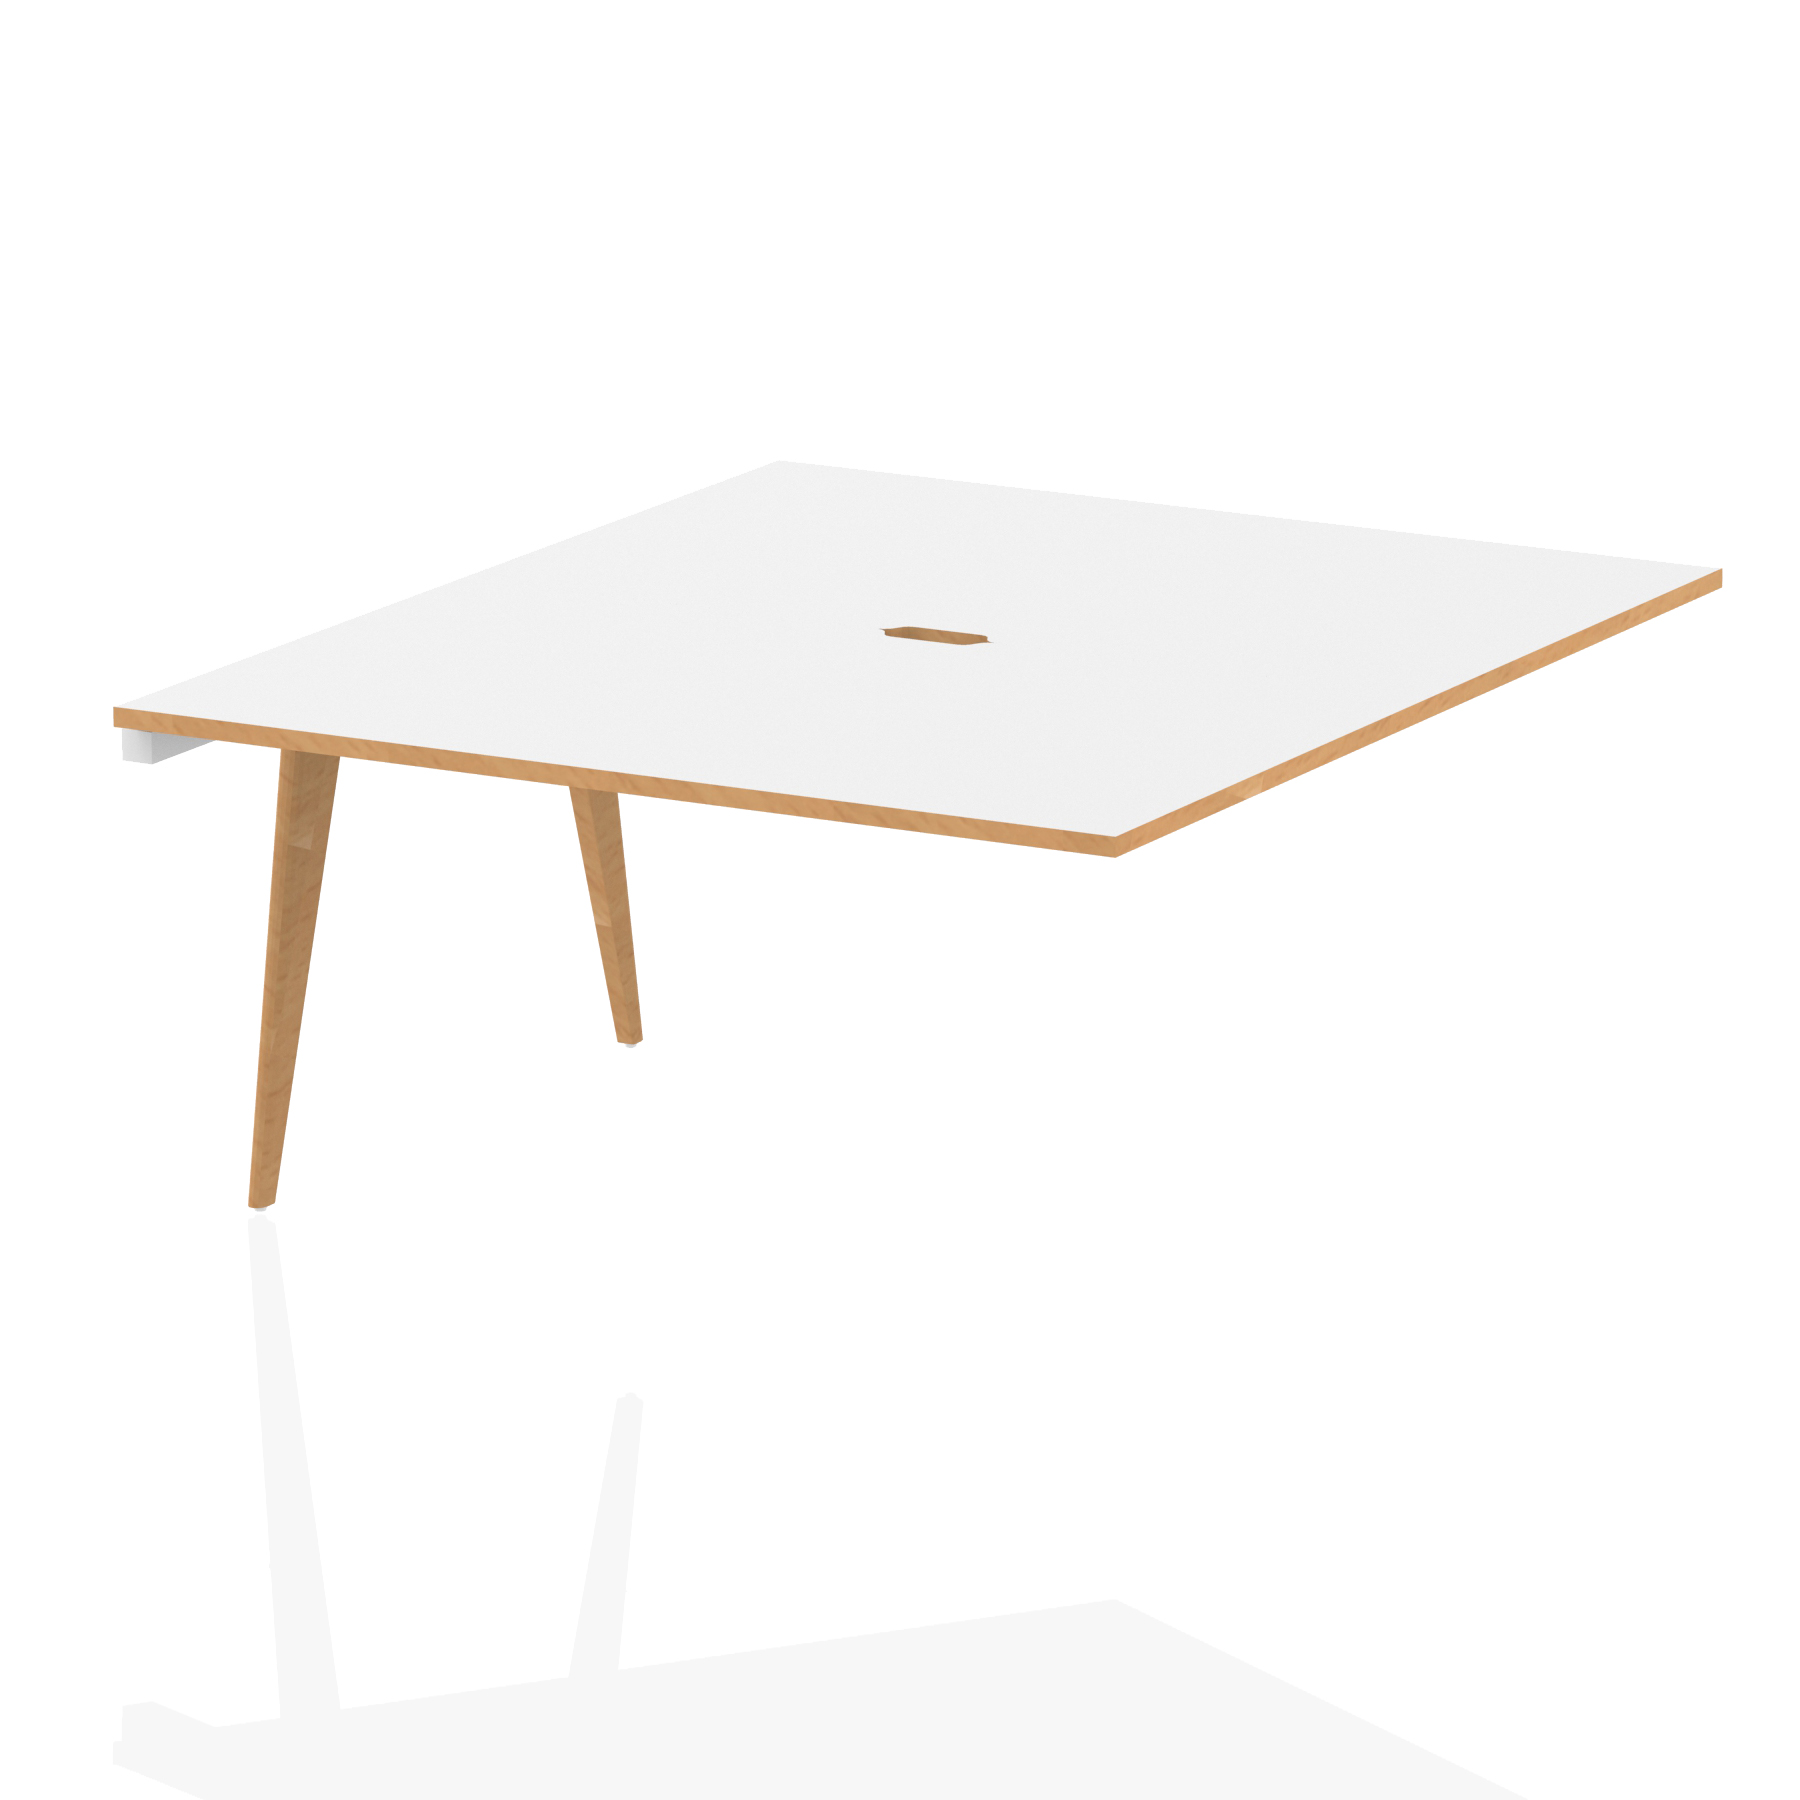 Oslo B2B Ext Kit White Frame Wooden Leg Bench Desk 1400 White With Natural Wood Edge